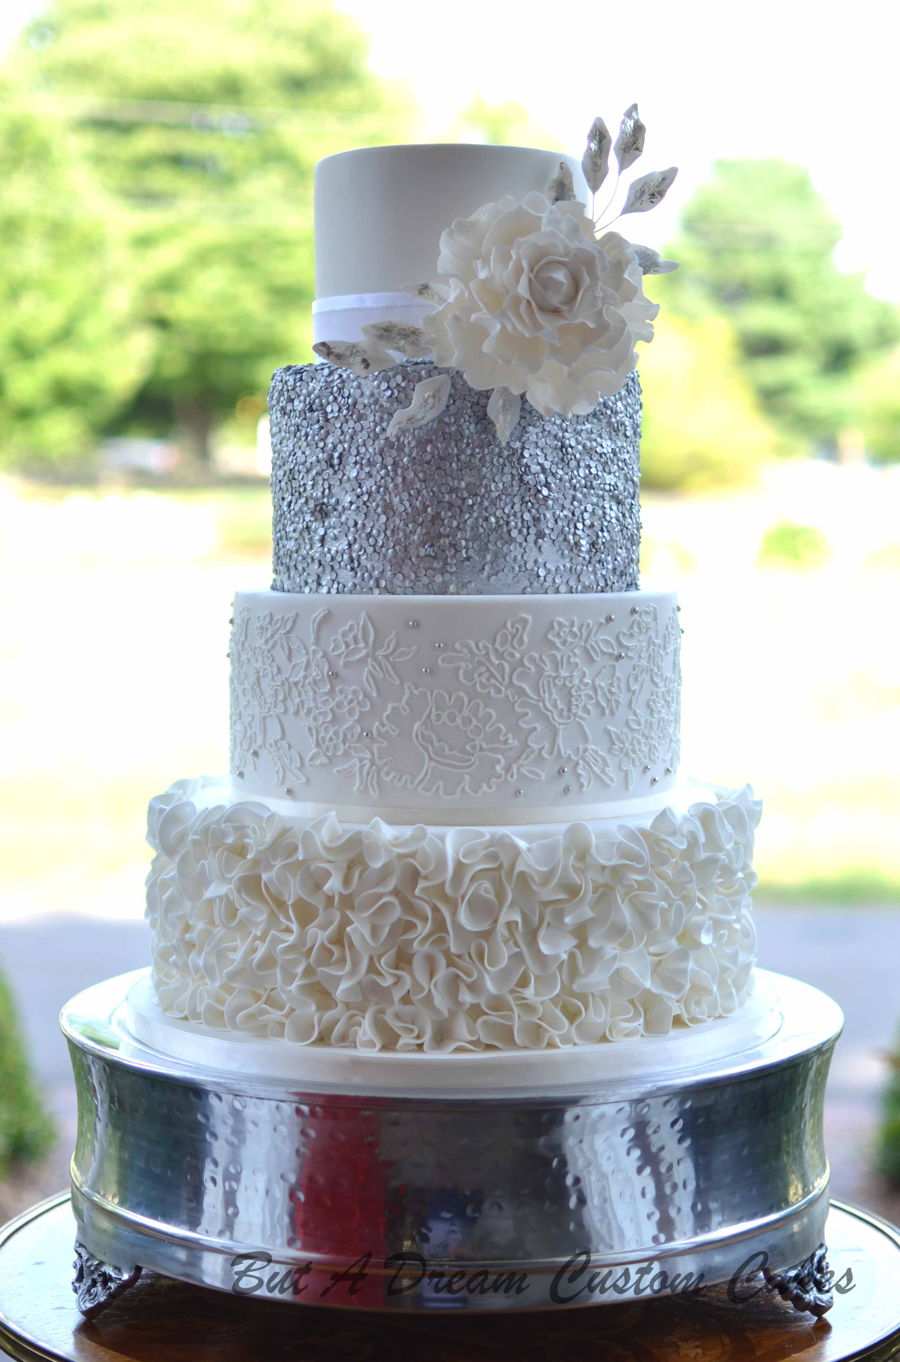 Mixed Texture Wedding Cake on Cake Central